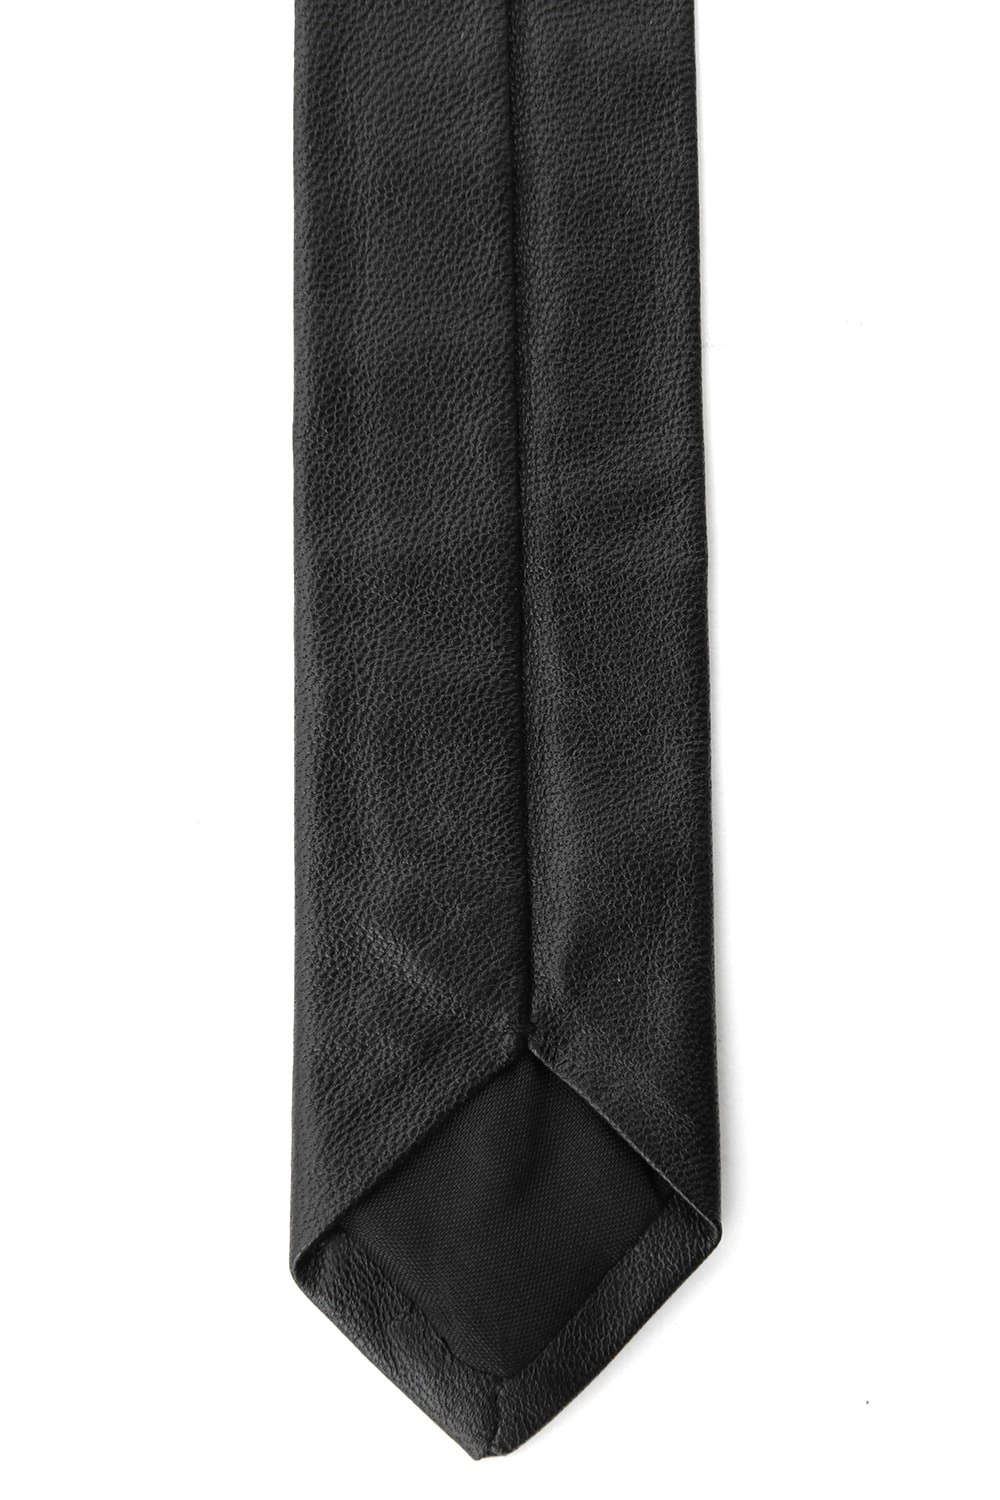 T.A.S  LAMB LEATHER NECK TIE (NARROW)